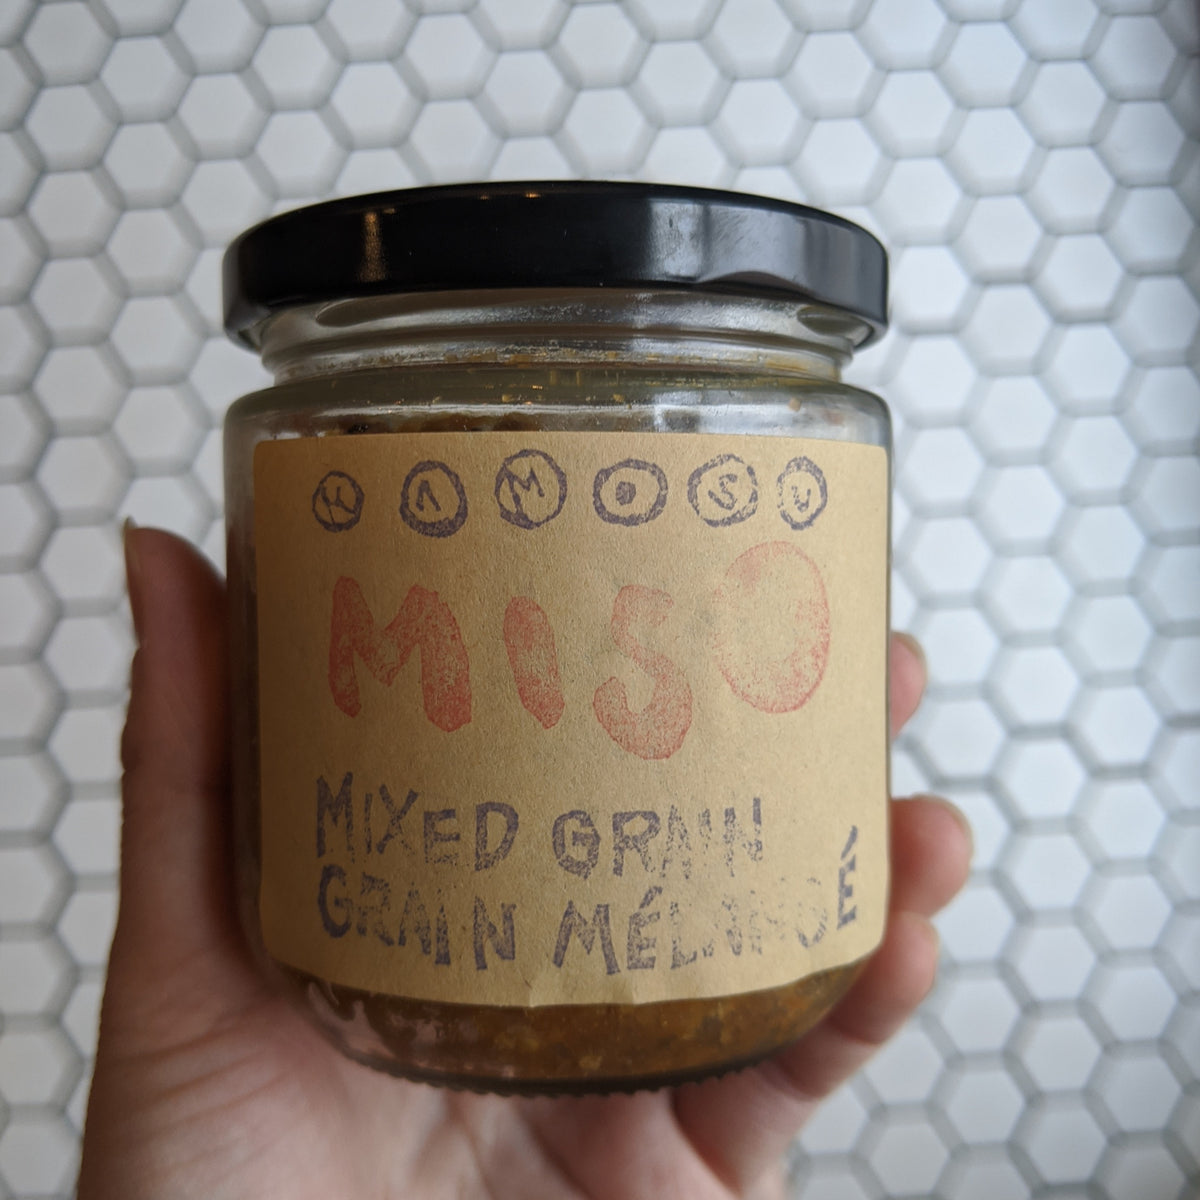 Kamosu Miso: Mixed Grain